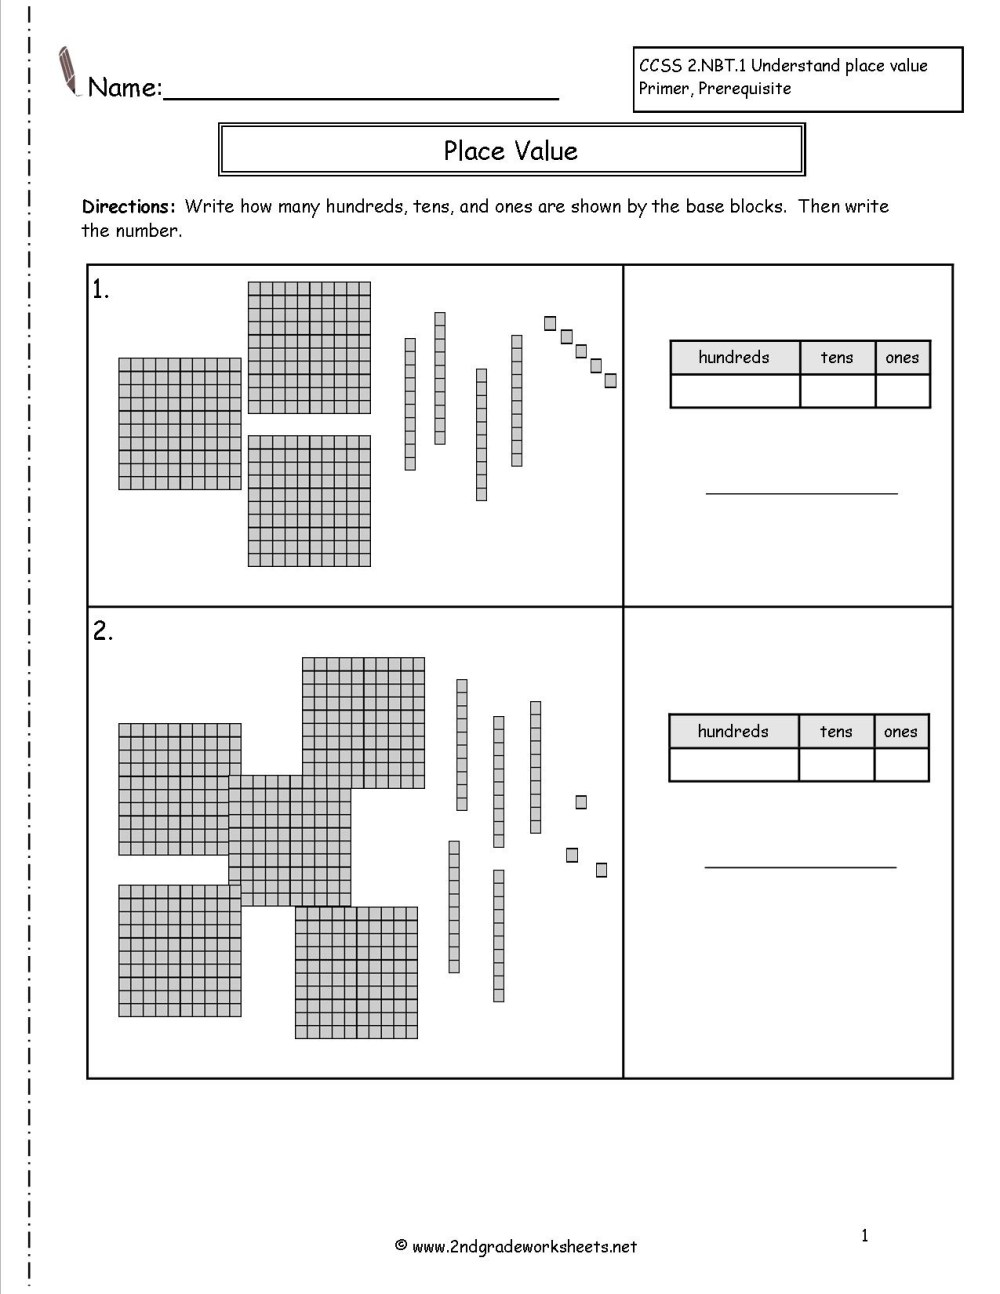 medium resolution of 2nd Grade Place Value Worksheets Pdf   Printable Worksheets and Activities  for Teachers